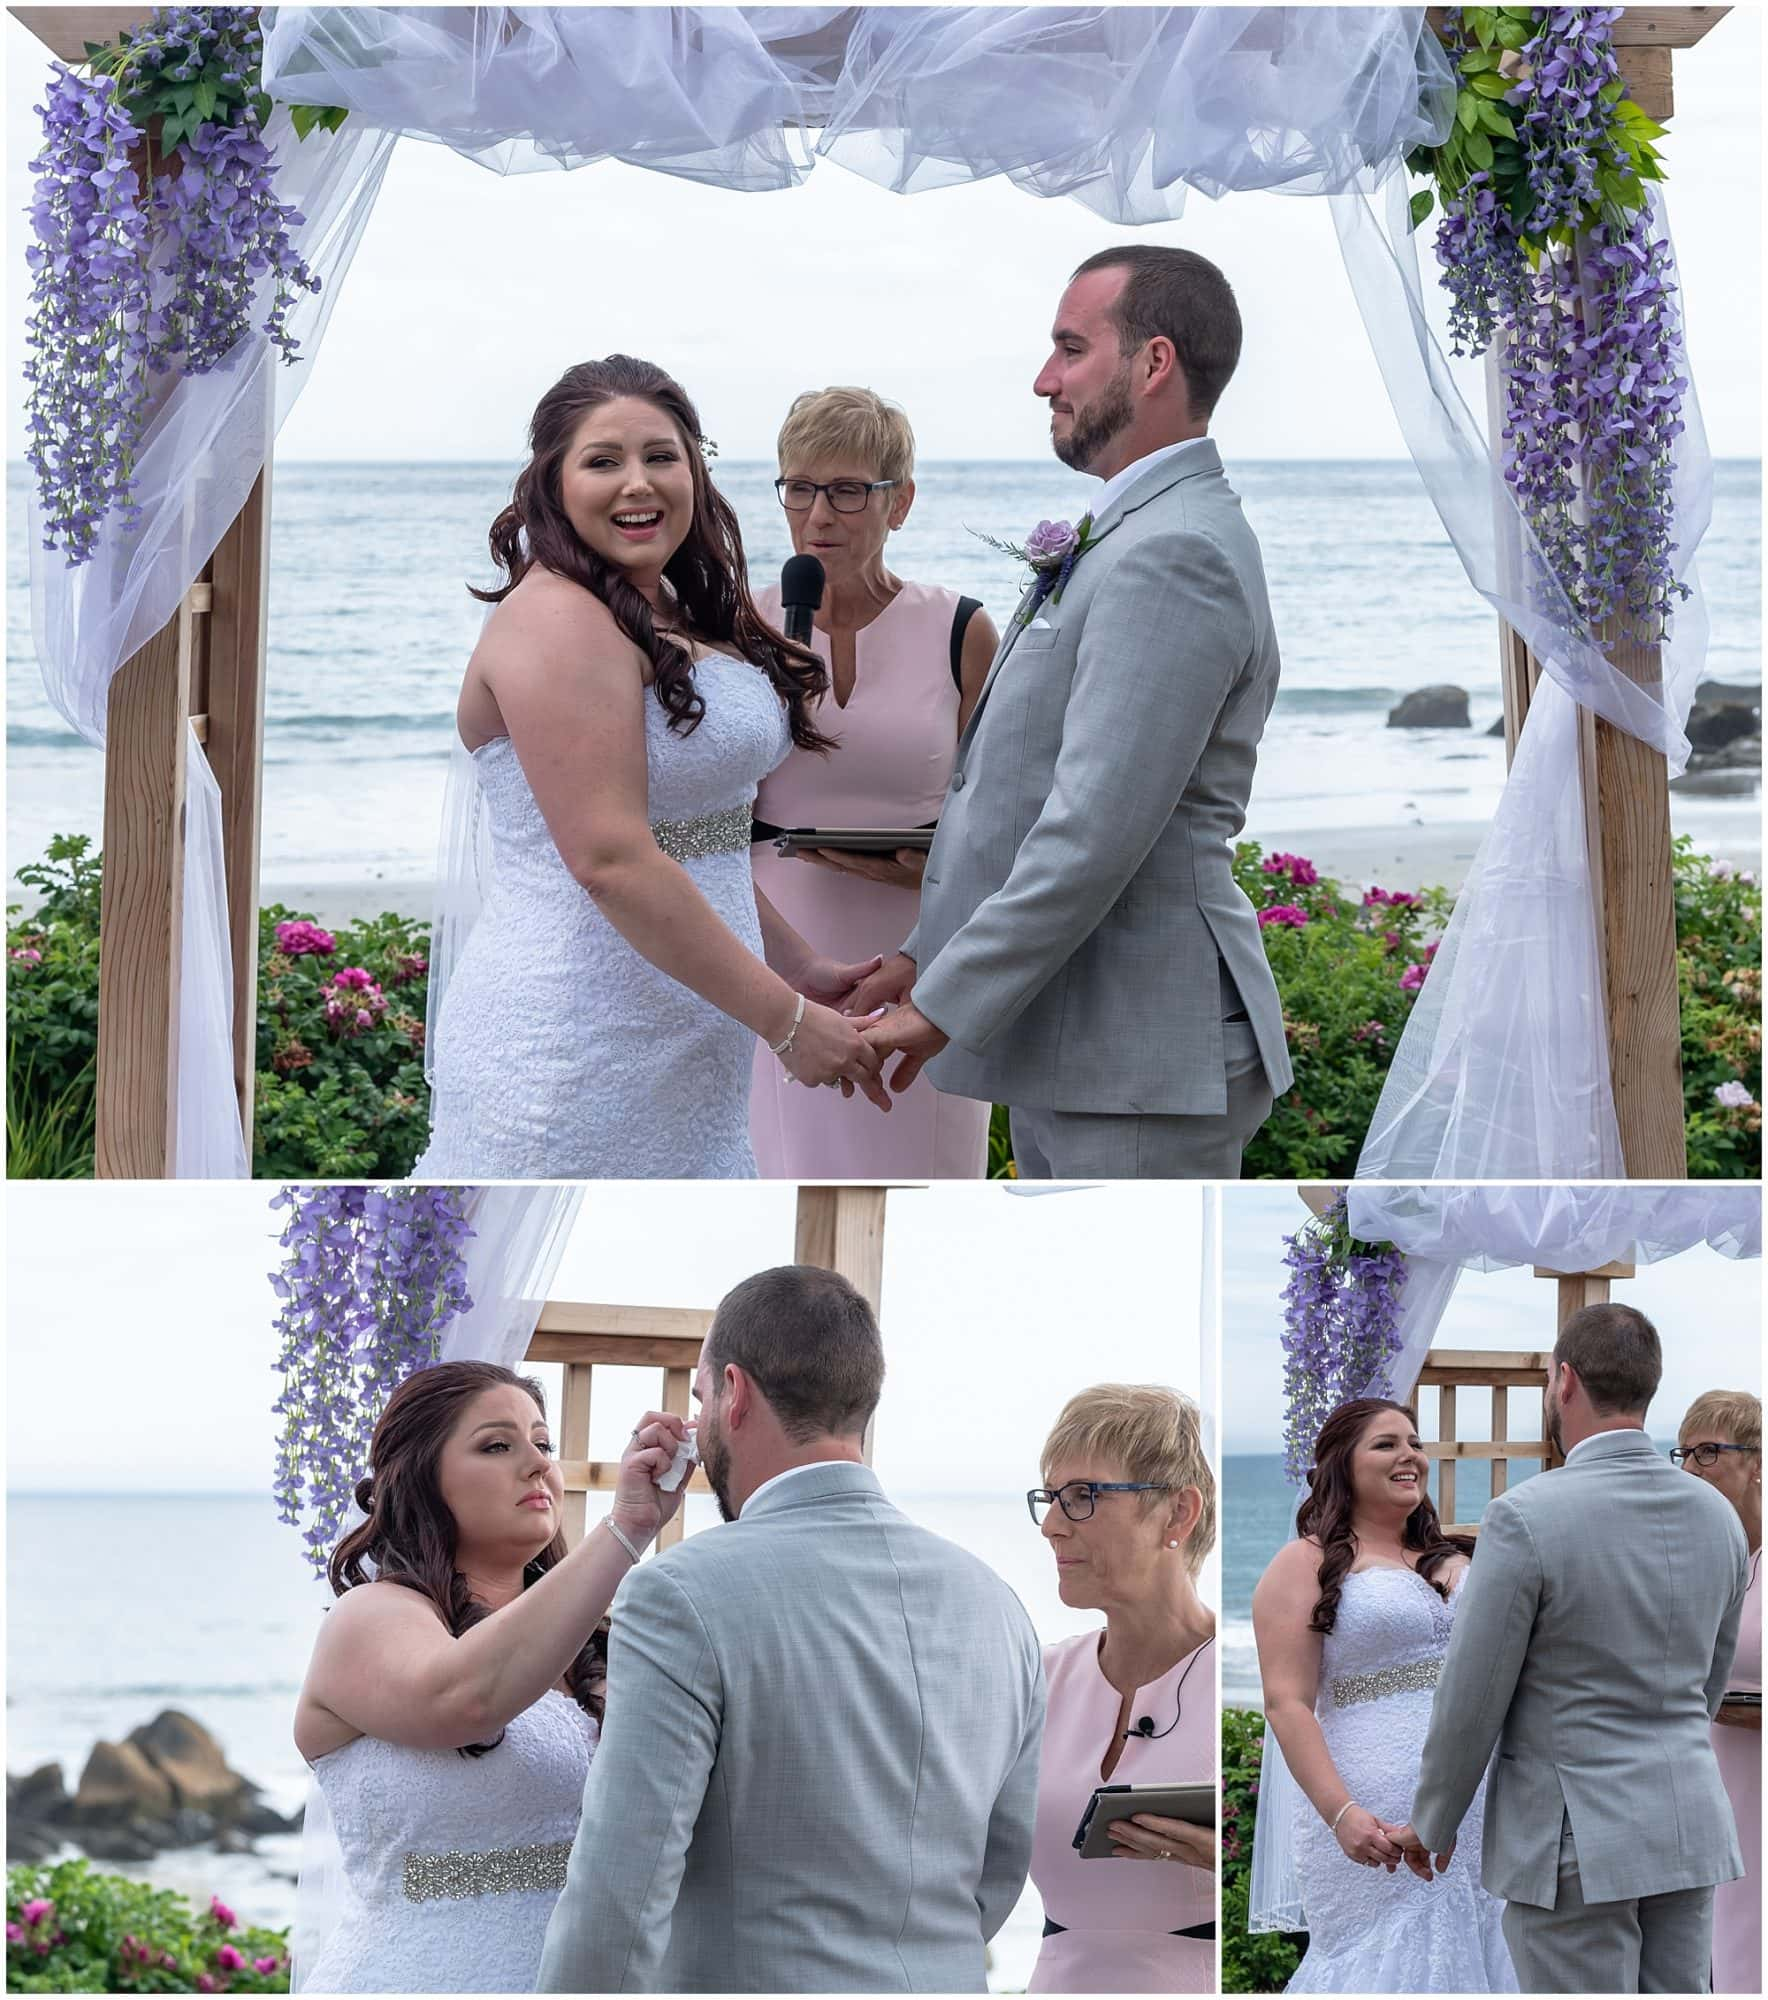 The bride and groom say their wedding vows to each other during their wedding ceremony at the White Point Beach Resort in Halifax NS.